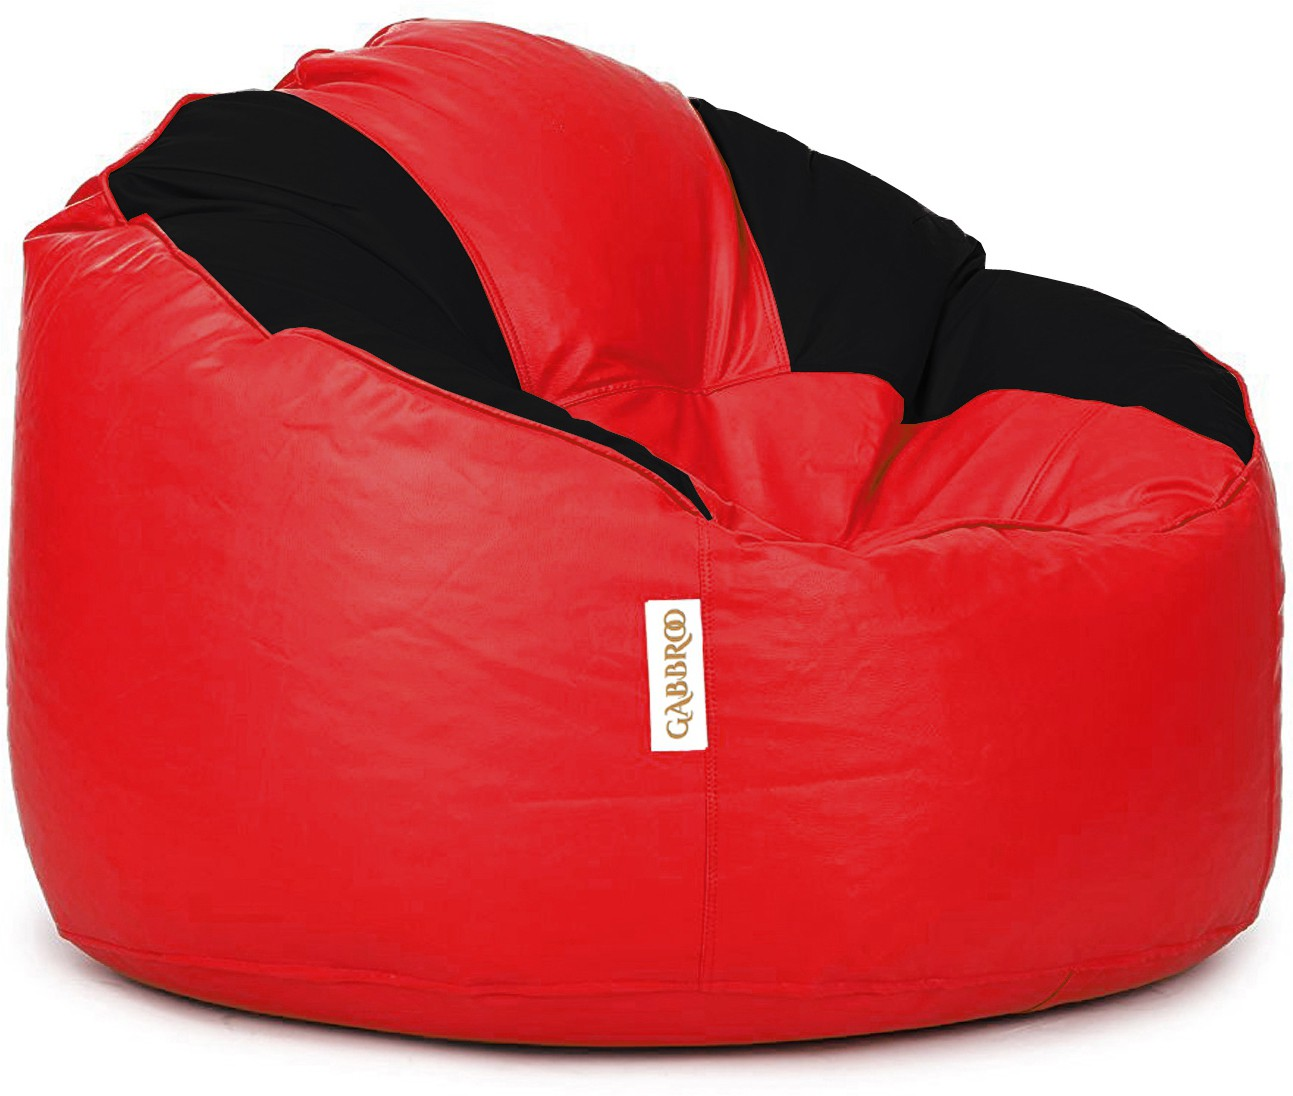 View Gabbroo XXXL Lounger Bean Bag Cover(Red, Black) Furniture (StyleCraft)